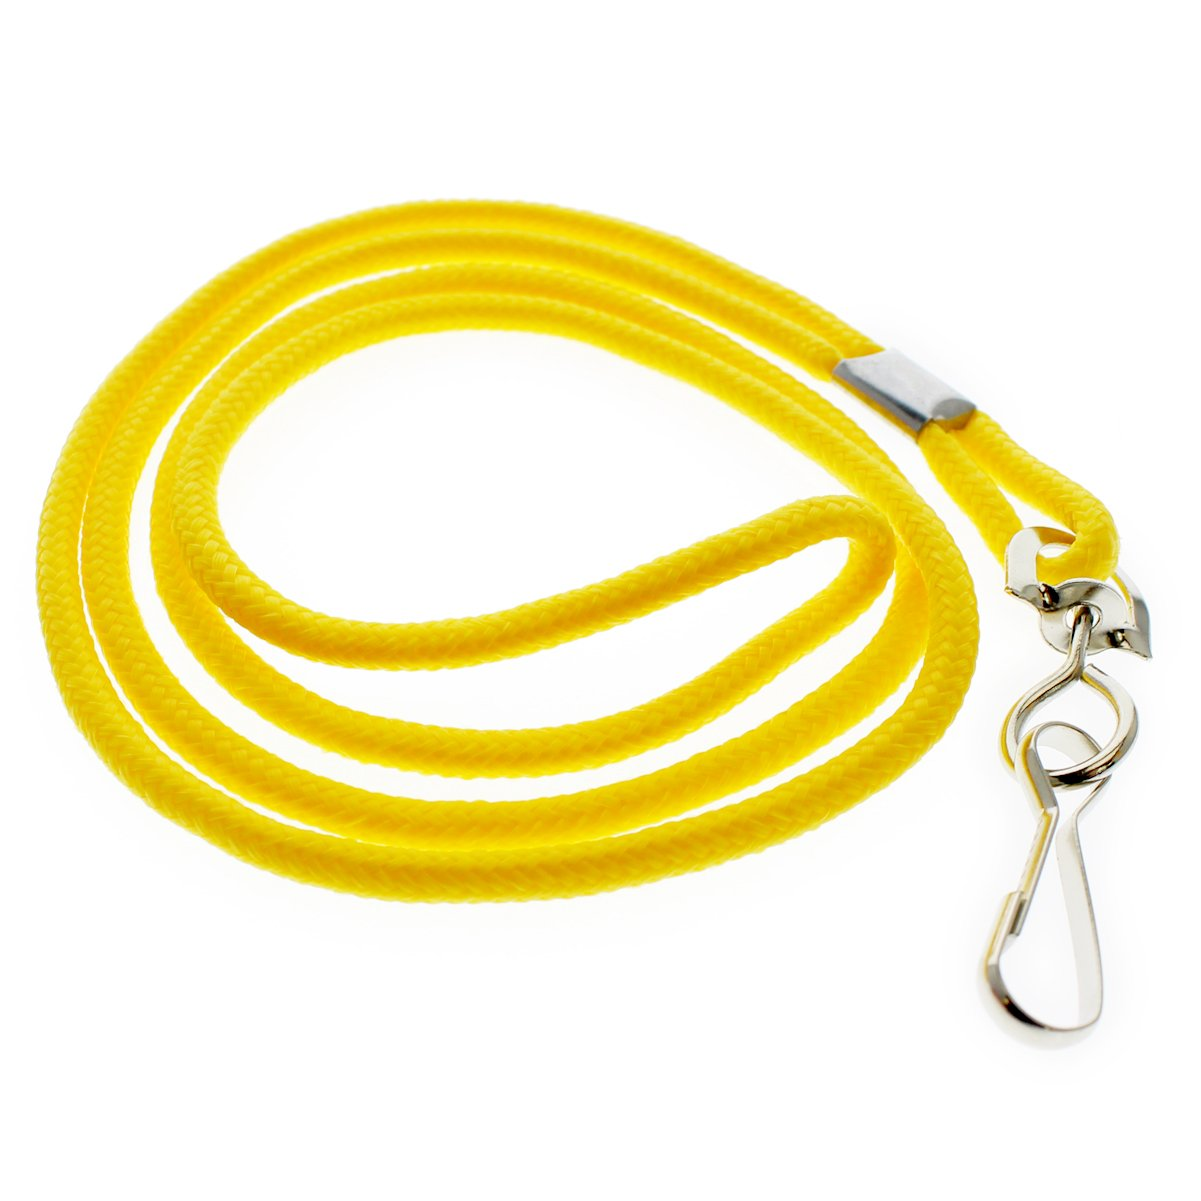 25 Pack - Premium Round ID Badge Neck Lanyards for Card Holders and Name Tags - 36 in Non-Breakaway Heavy Duty Cord & Secure Metal Swivel J Hook Clip by Specialist ID (Yellow)